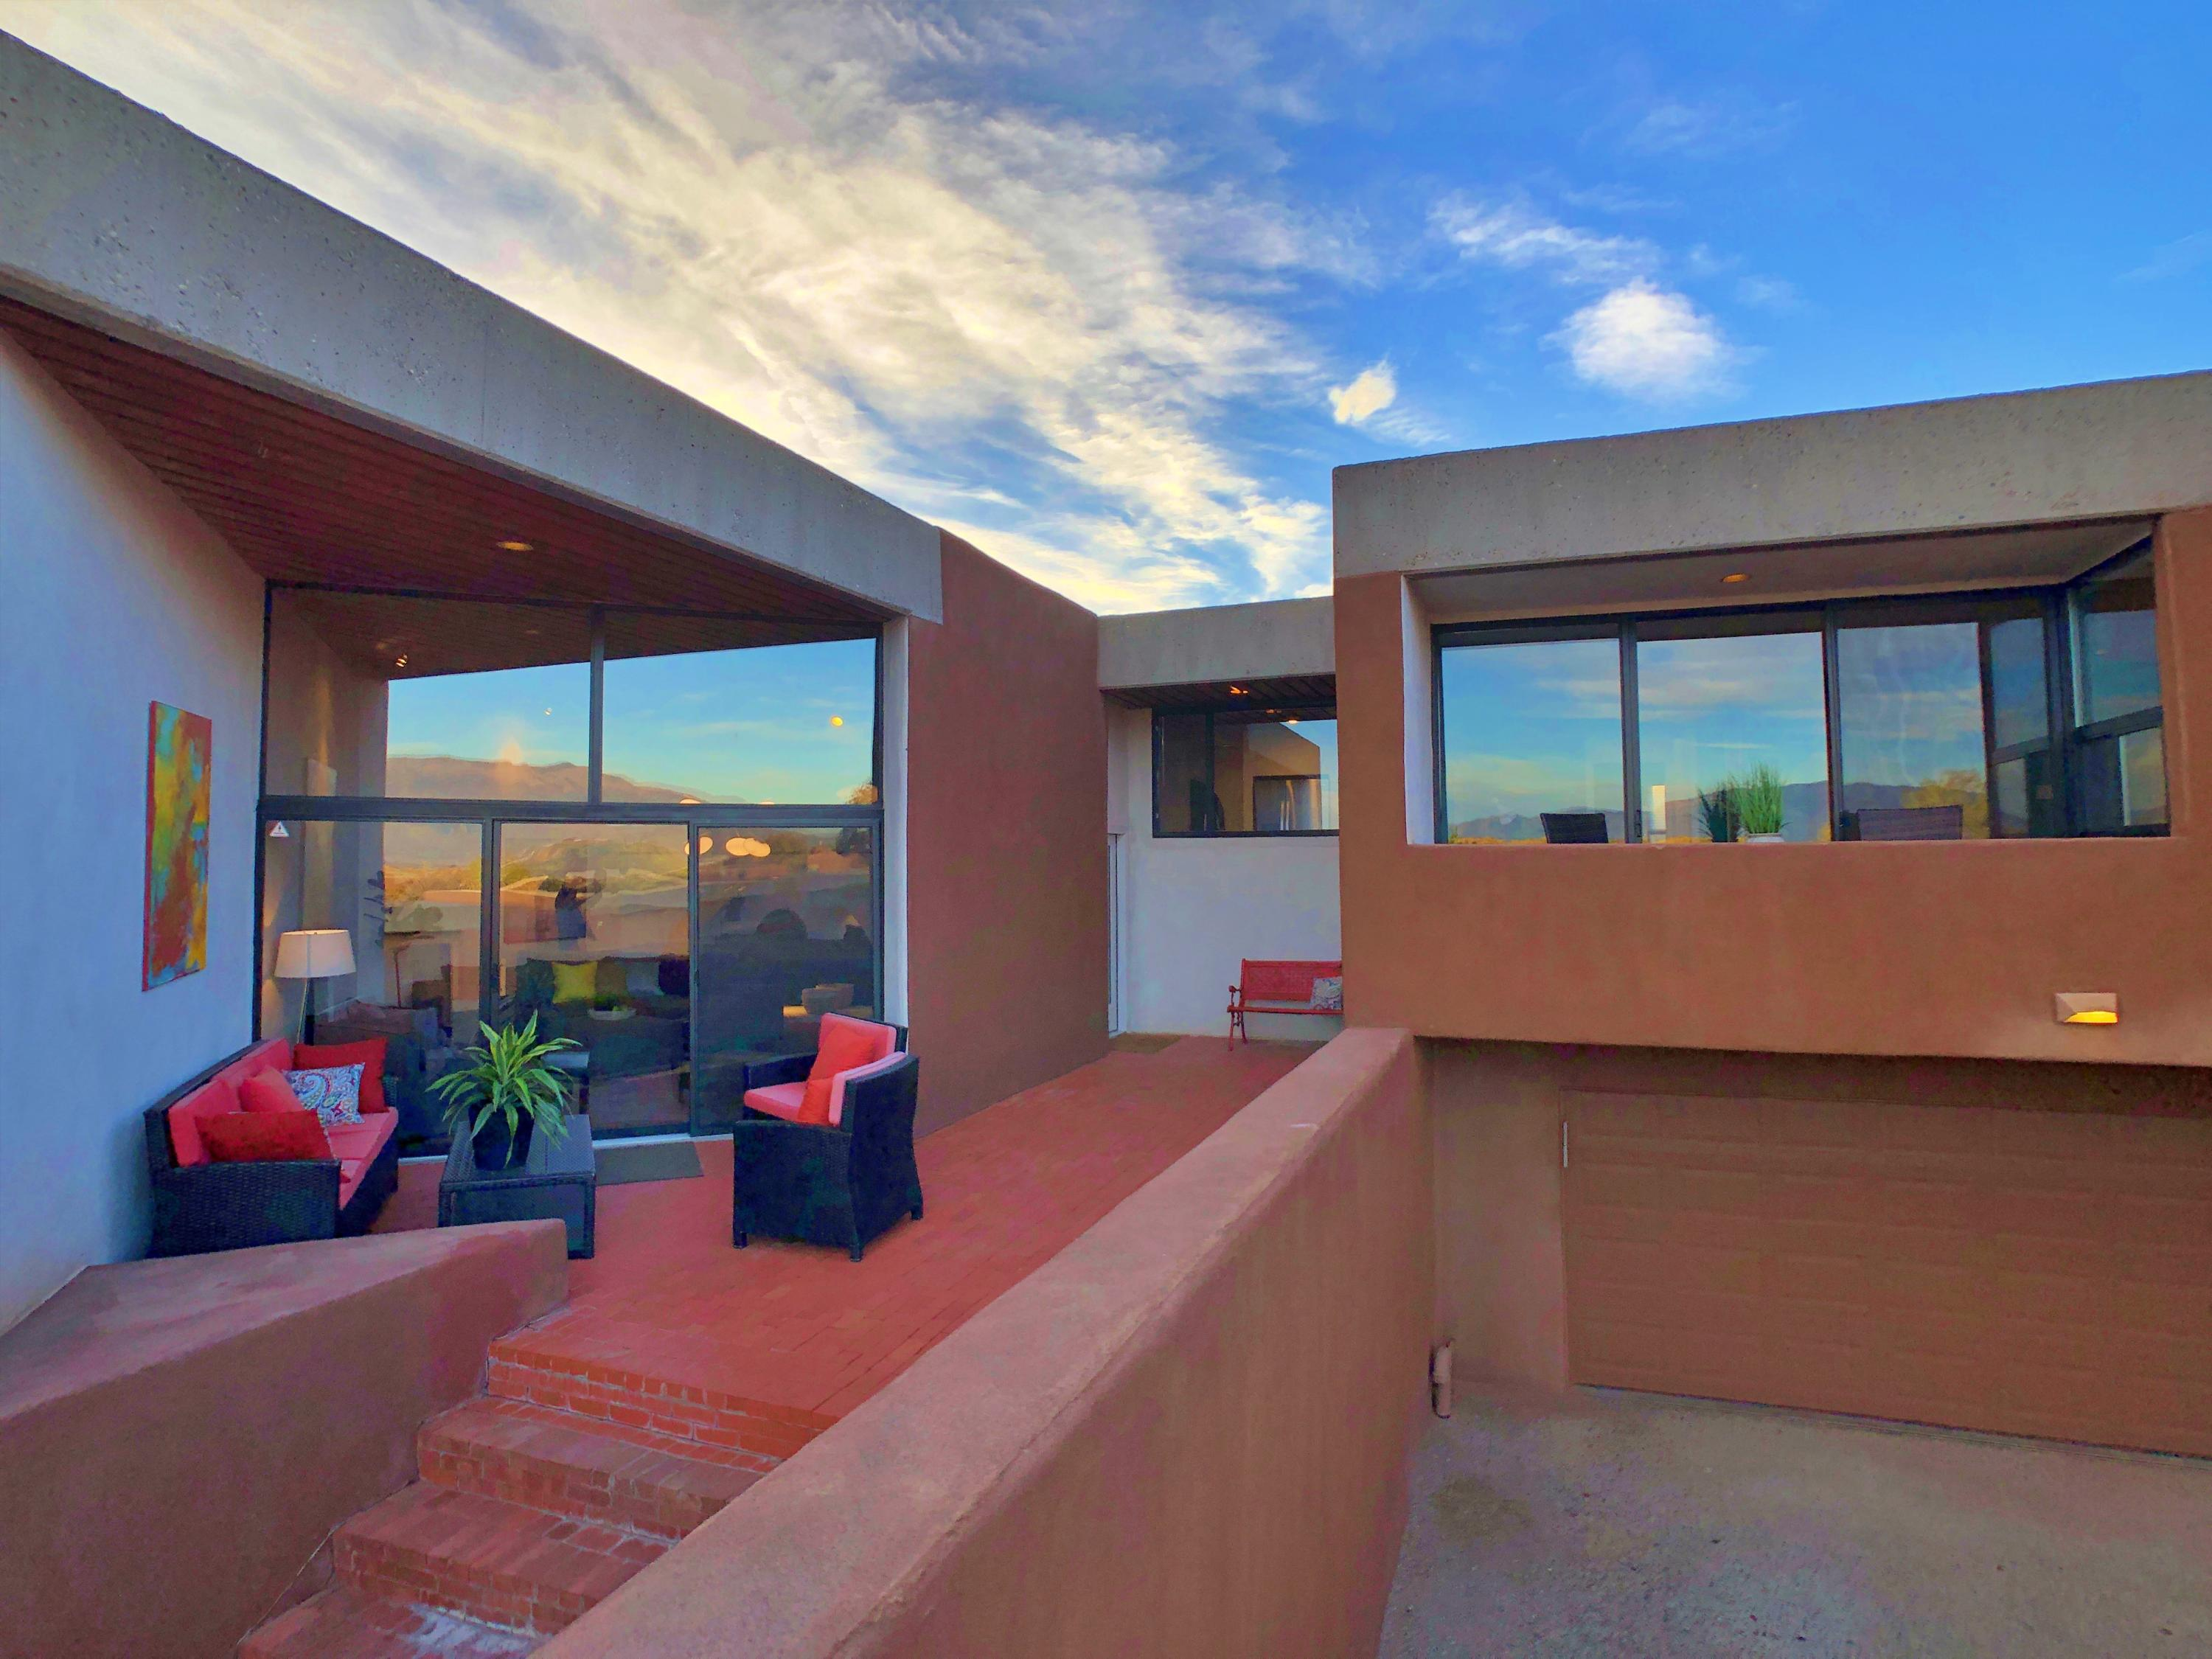 Luxe Westside townhome along the Rio Grande Bosque has stunning views & is surrounded by 5 acres of gardens & greenspaces. See both 3-D Virtual Tours! Built by renowned Architect Antoine Predock, the striking all-adobe La Luz community relishes its privacy & celebrates the surrounding space. 6 Tennis Ct NW is the embodiment of all that: it boasts one of the largest floorplans with 2 private courtyards & a sweet east-view balcony. More to love: generous-sized rooms, splendid hardwood, brick & slate floors, wood beam ceilings, arches, granite, a Kiva, numerous skylights, 2 en-suites, pocket doors & tons of storage. Take an elevator ride to the fabulous lower level home theater room--the space also includes a separate yoga studio/home gym/extra guest area--with 3/4 bath. Come see this place!